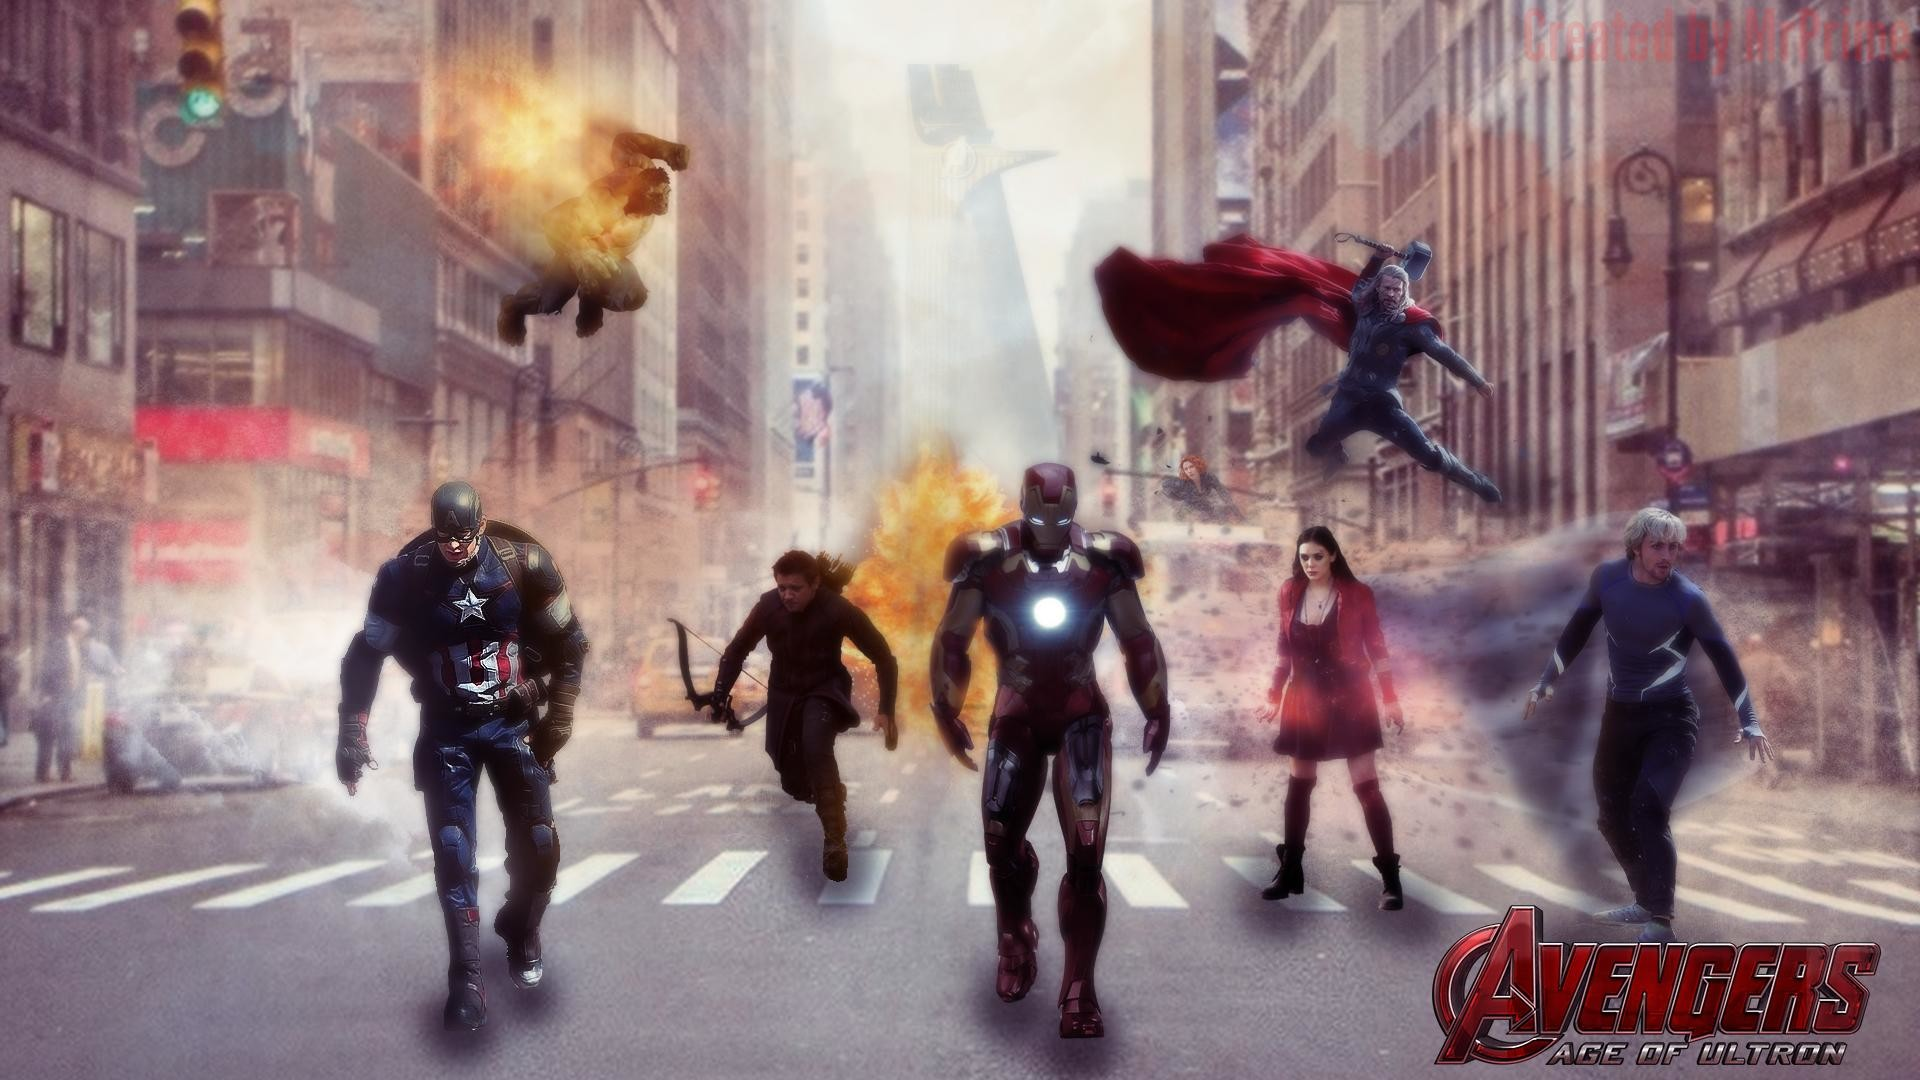 Avengers Age Of Ultron Wallpaper 1920x1080 By Sachso74